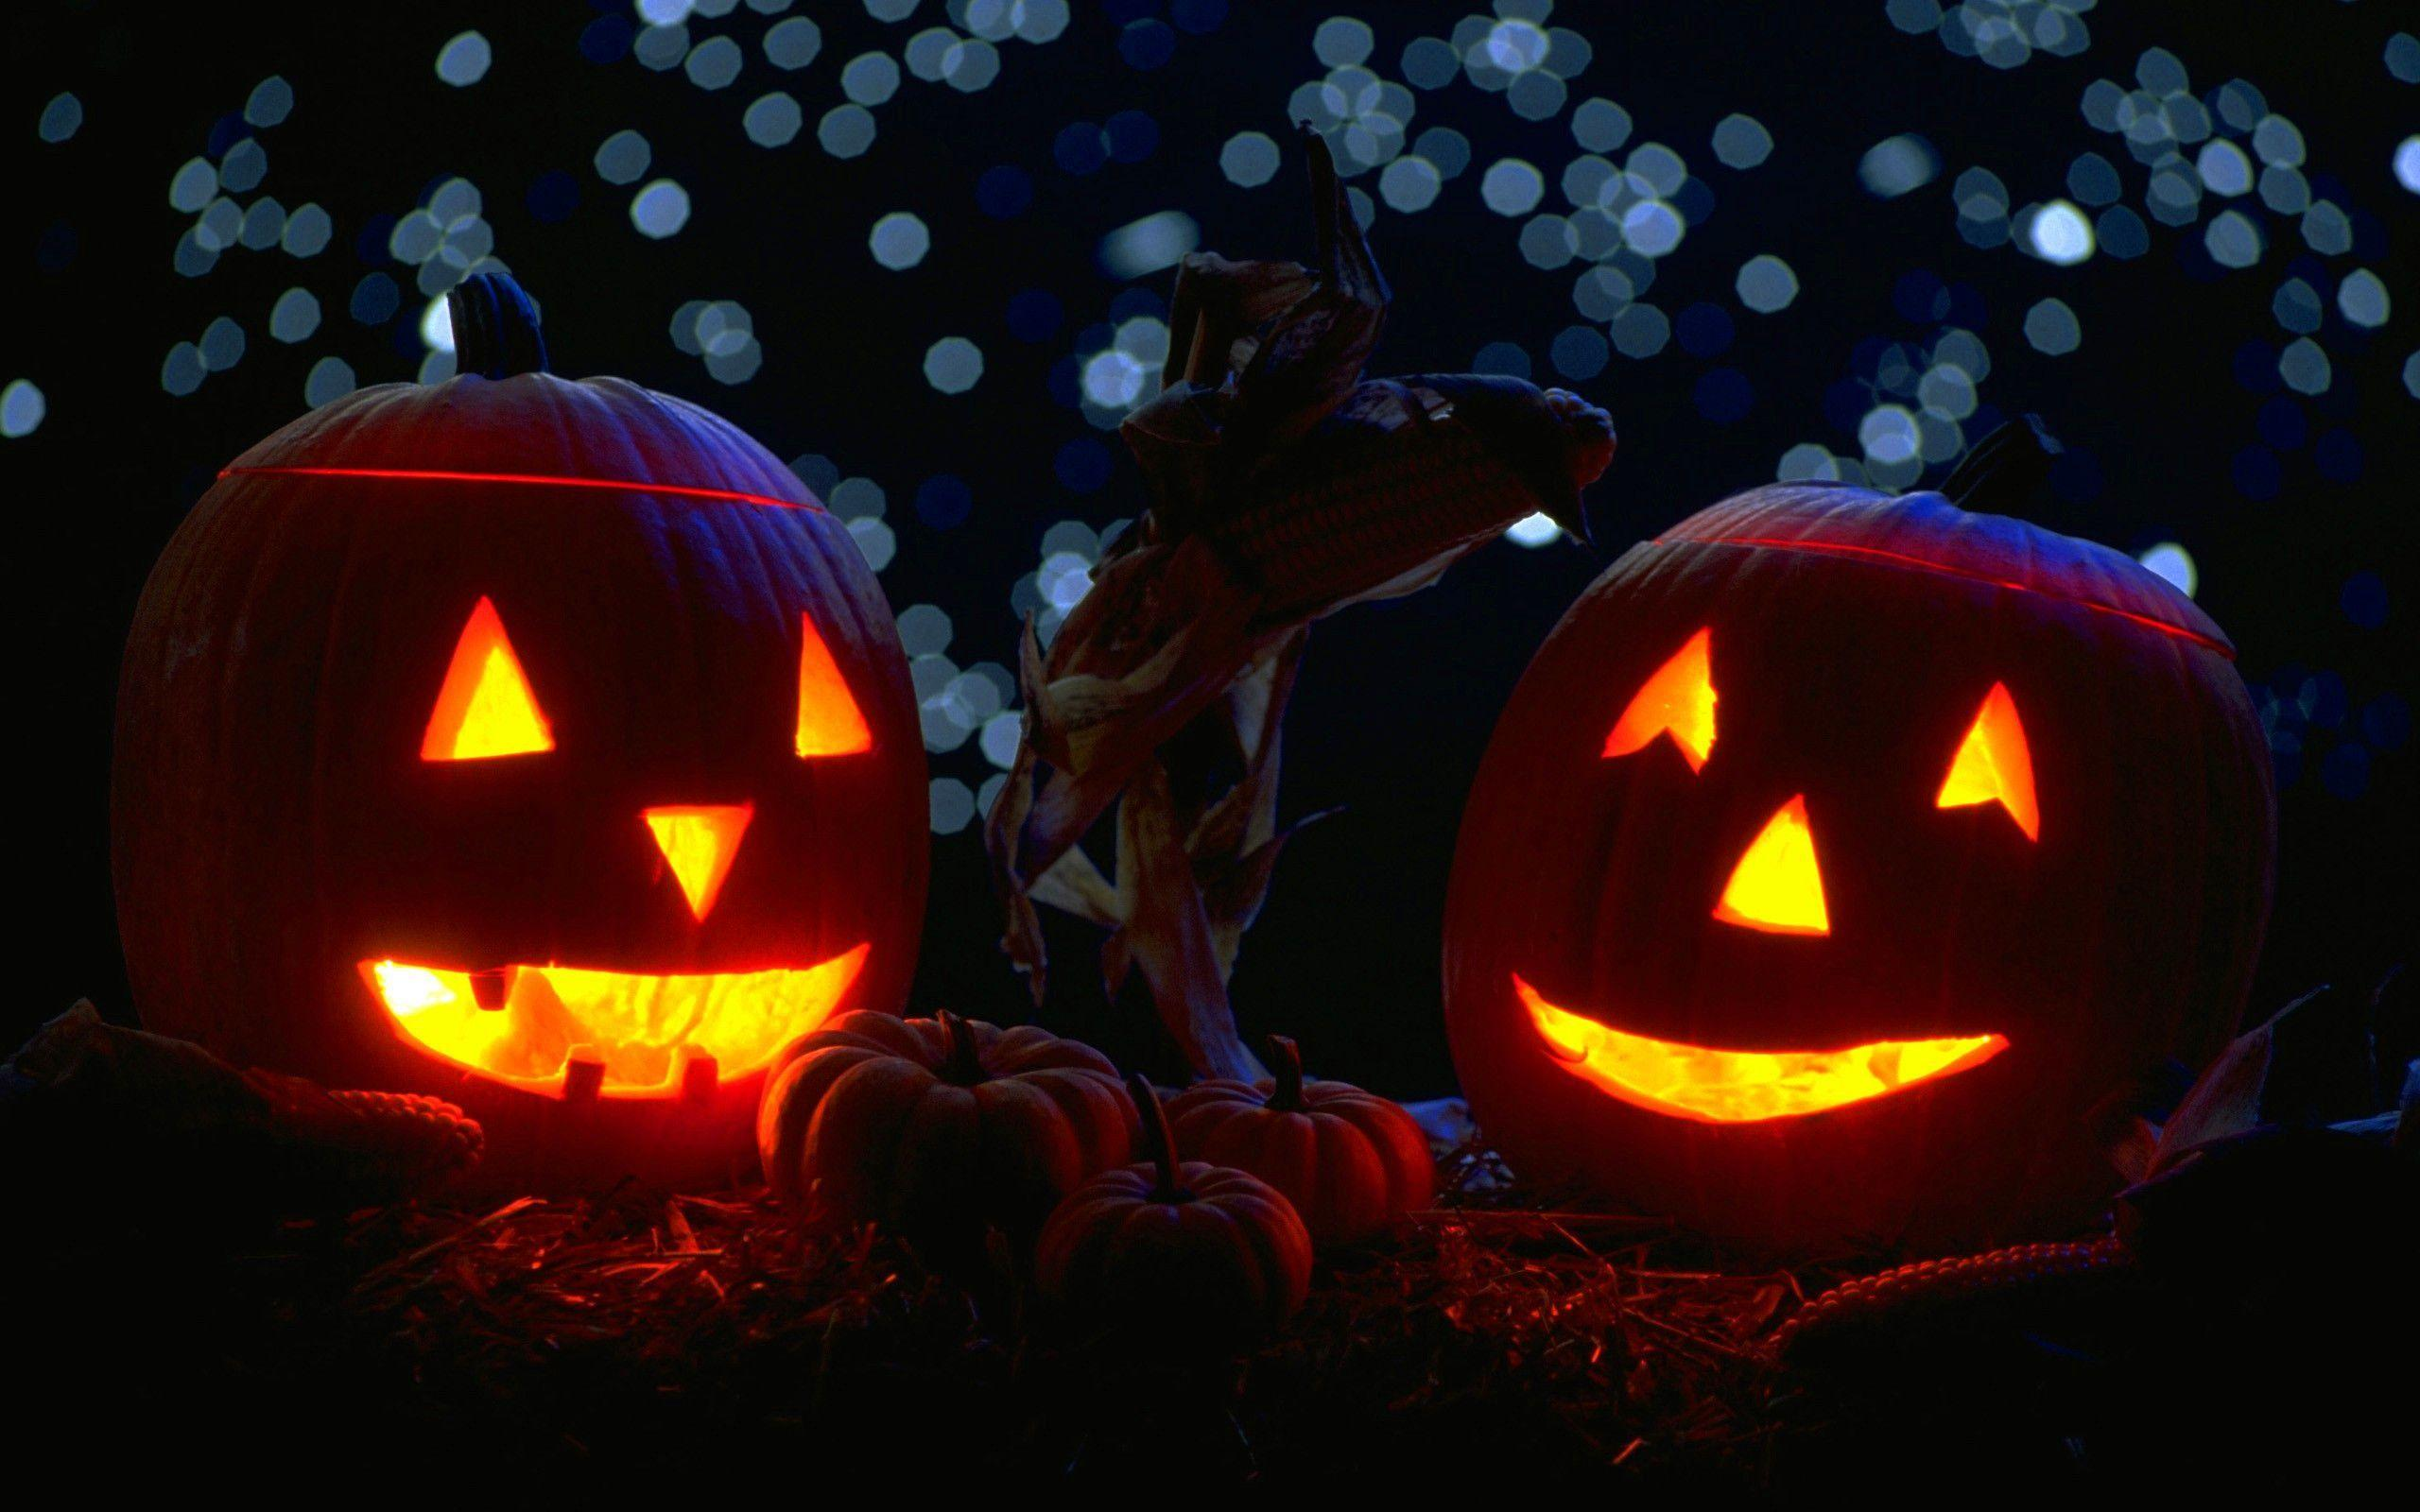 Design A Halloween Pumpkin Wallpapers 14246 Full HD Wallpapers